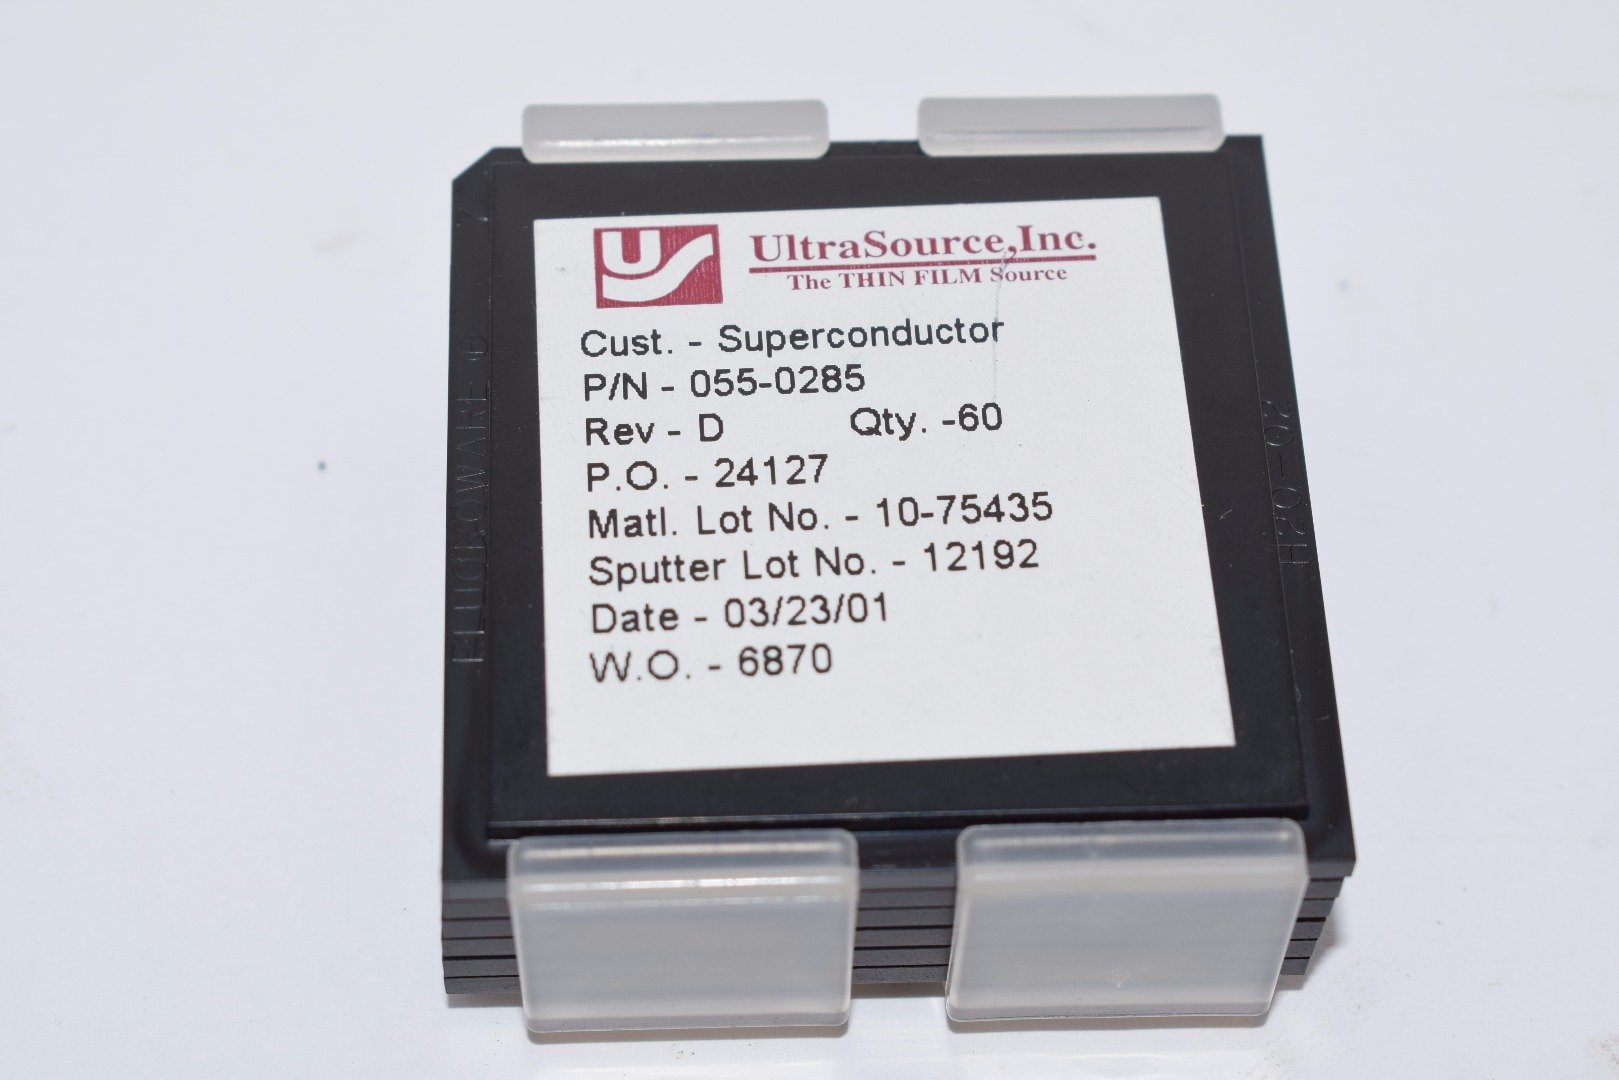 Lot of 10 NEW Superconductor UltraSource 055-0285 Rev D Thin Film Sensor by UltraSource (Image #1)